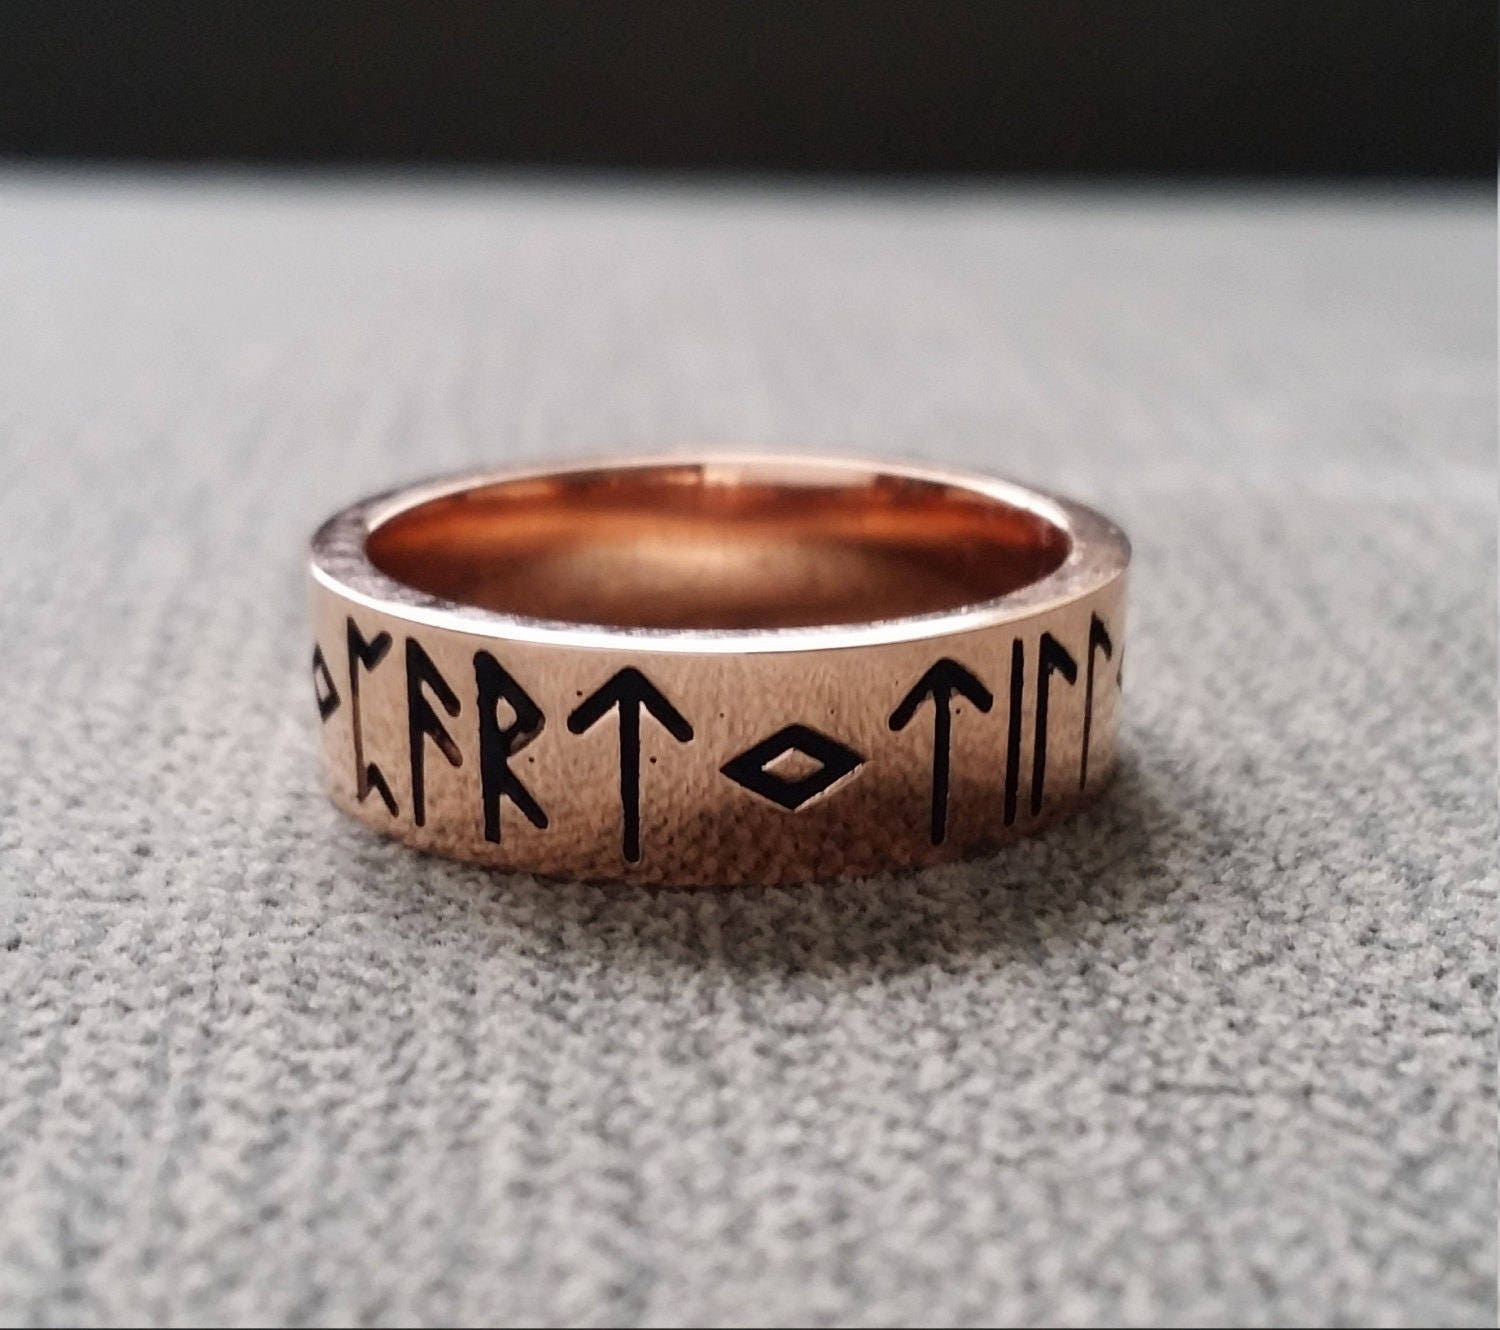 runes by viking norse penellibelle rustic pin quartz gold engagement frigg herkimer the ring world mythology nordic terminated hammered old wedding diamond rose rings